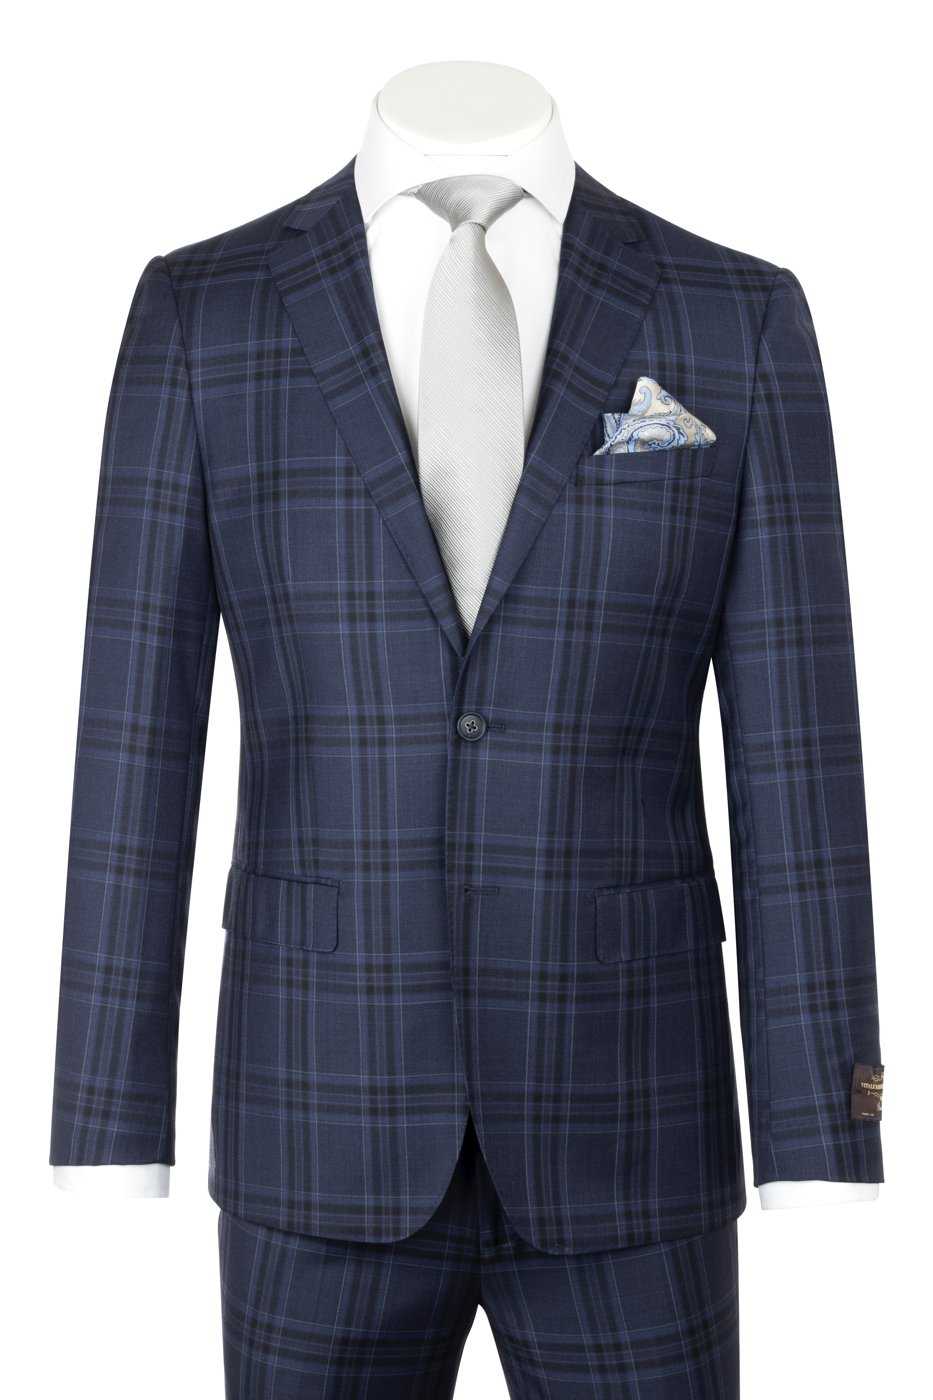 DOLCETTO Modern Fit, New Blue with Black & White stripe windowpane, Pure Wool Suit by VITALE BARBERIS CANONICO Cloth by Canaletto Menswear CV86.7651/2